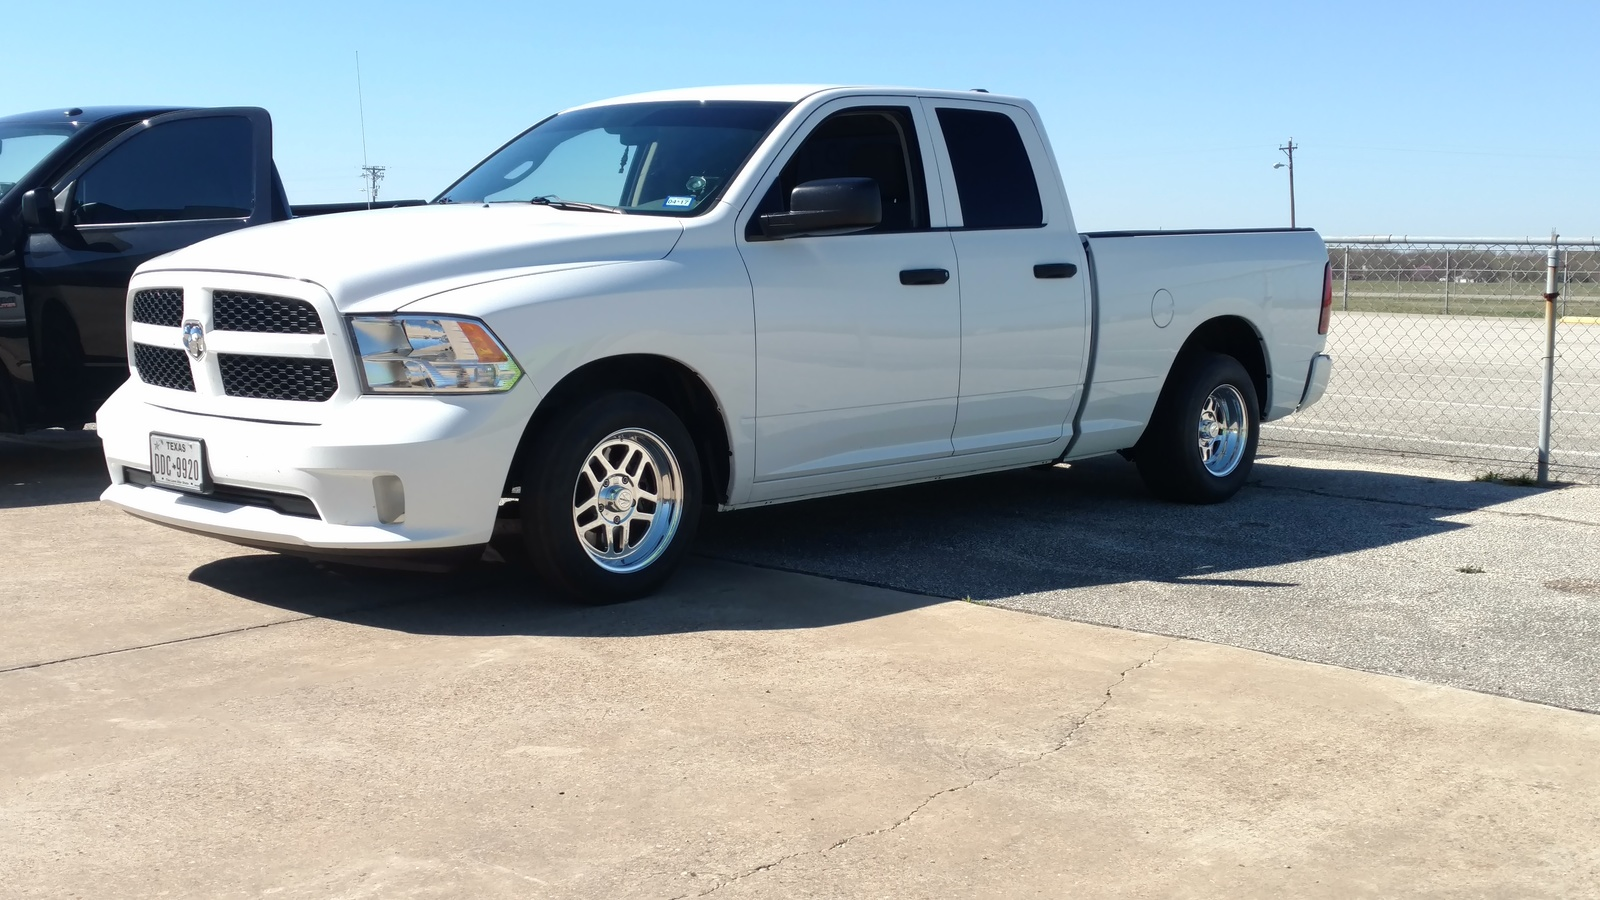 2014 White Dodge Ram 1500 Express picture, mods, upgrades